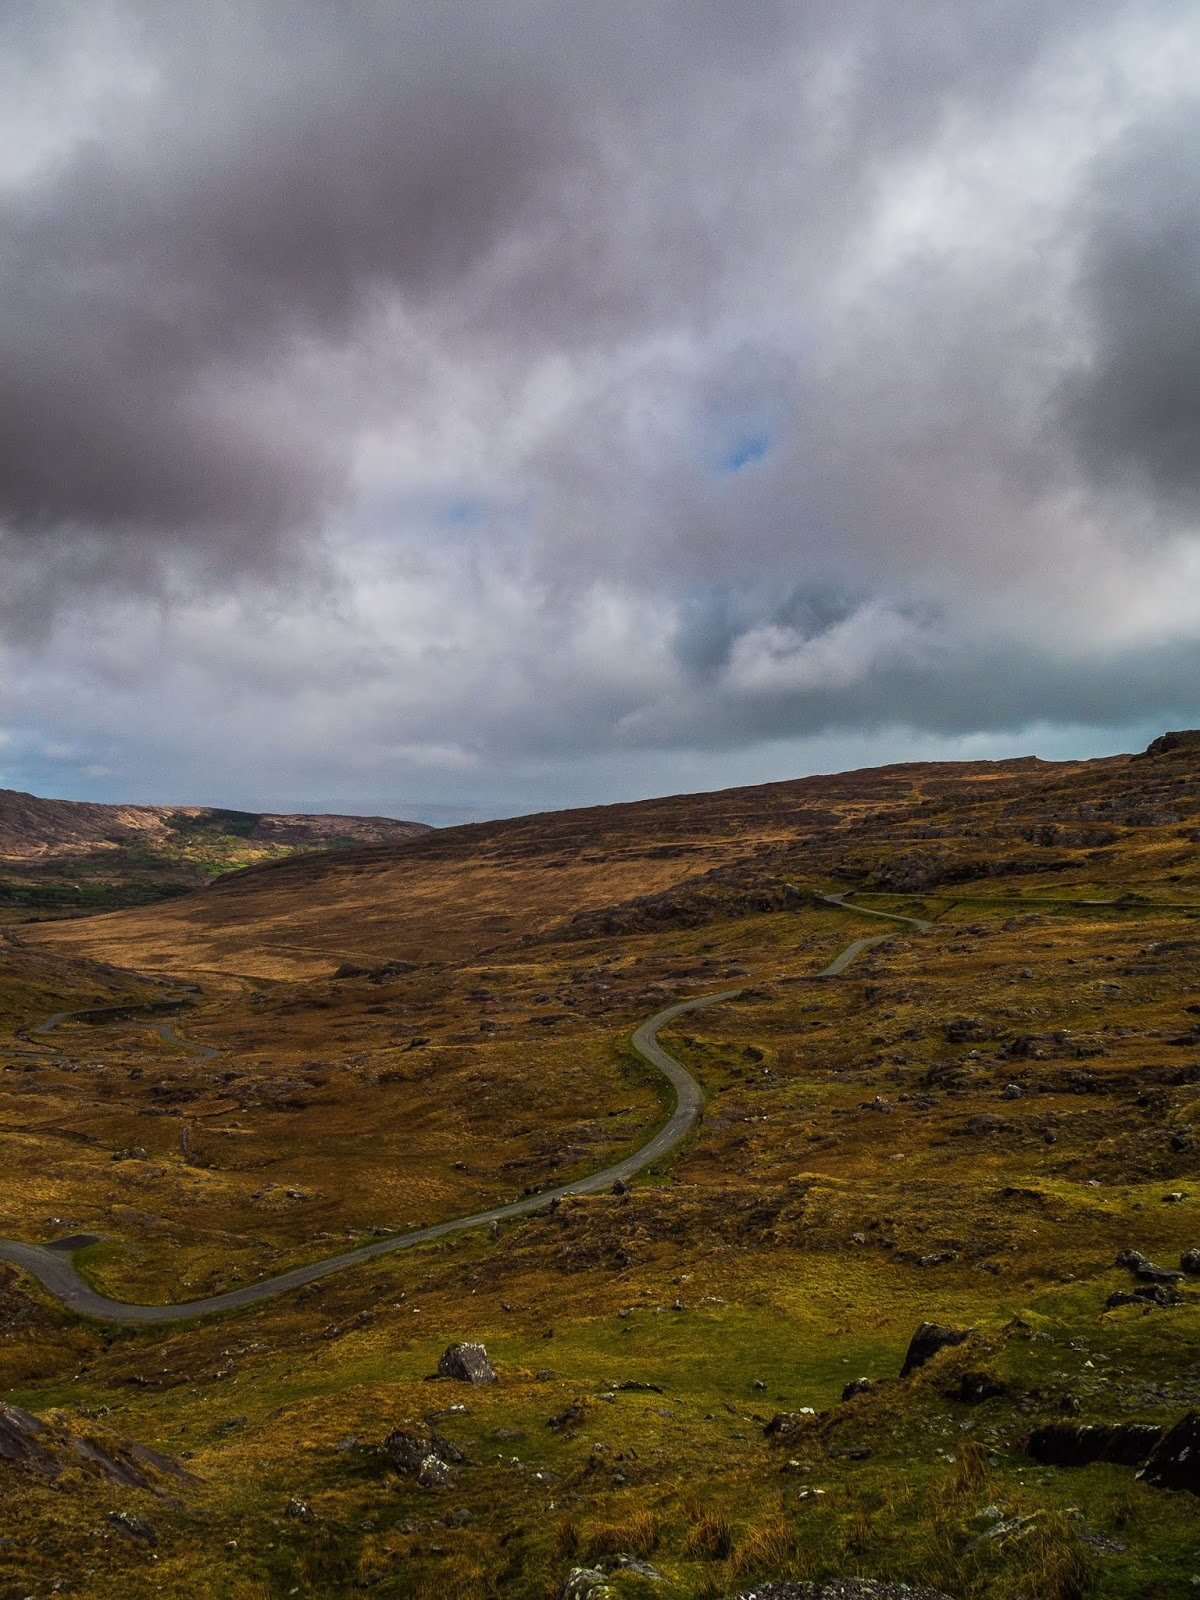 A view of the winding Healy Pass in the Caha Mountain range pictured at the border of Cork and Kerry.